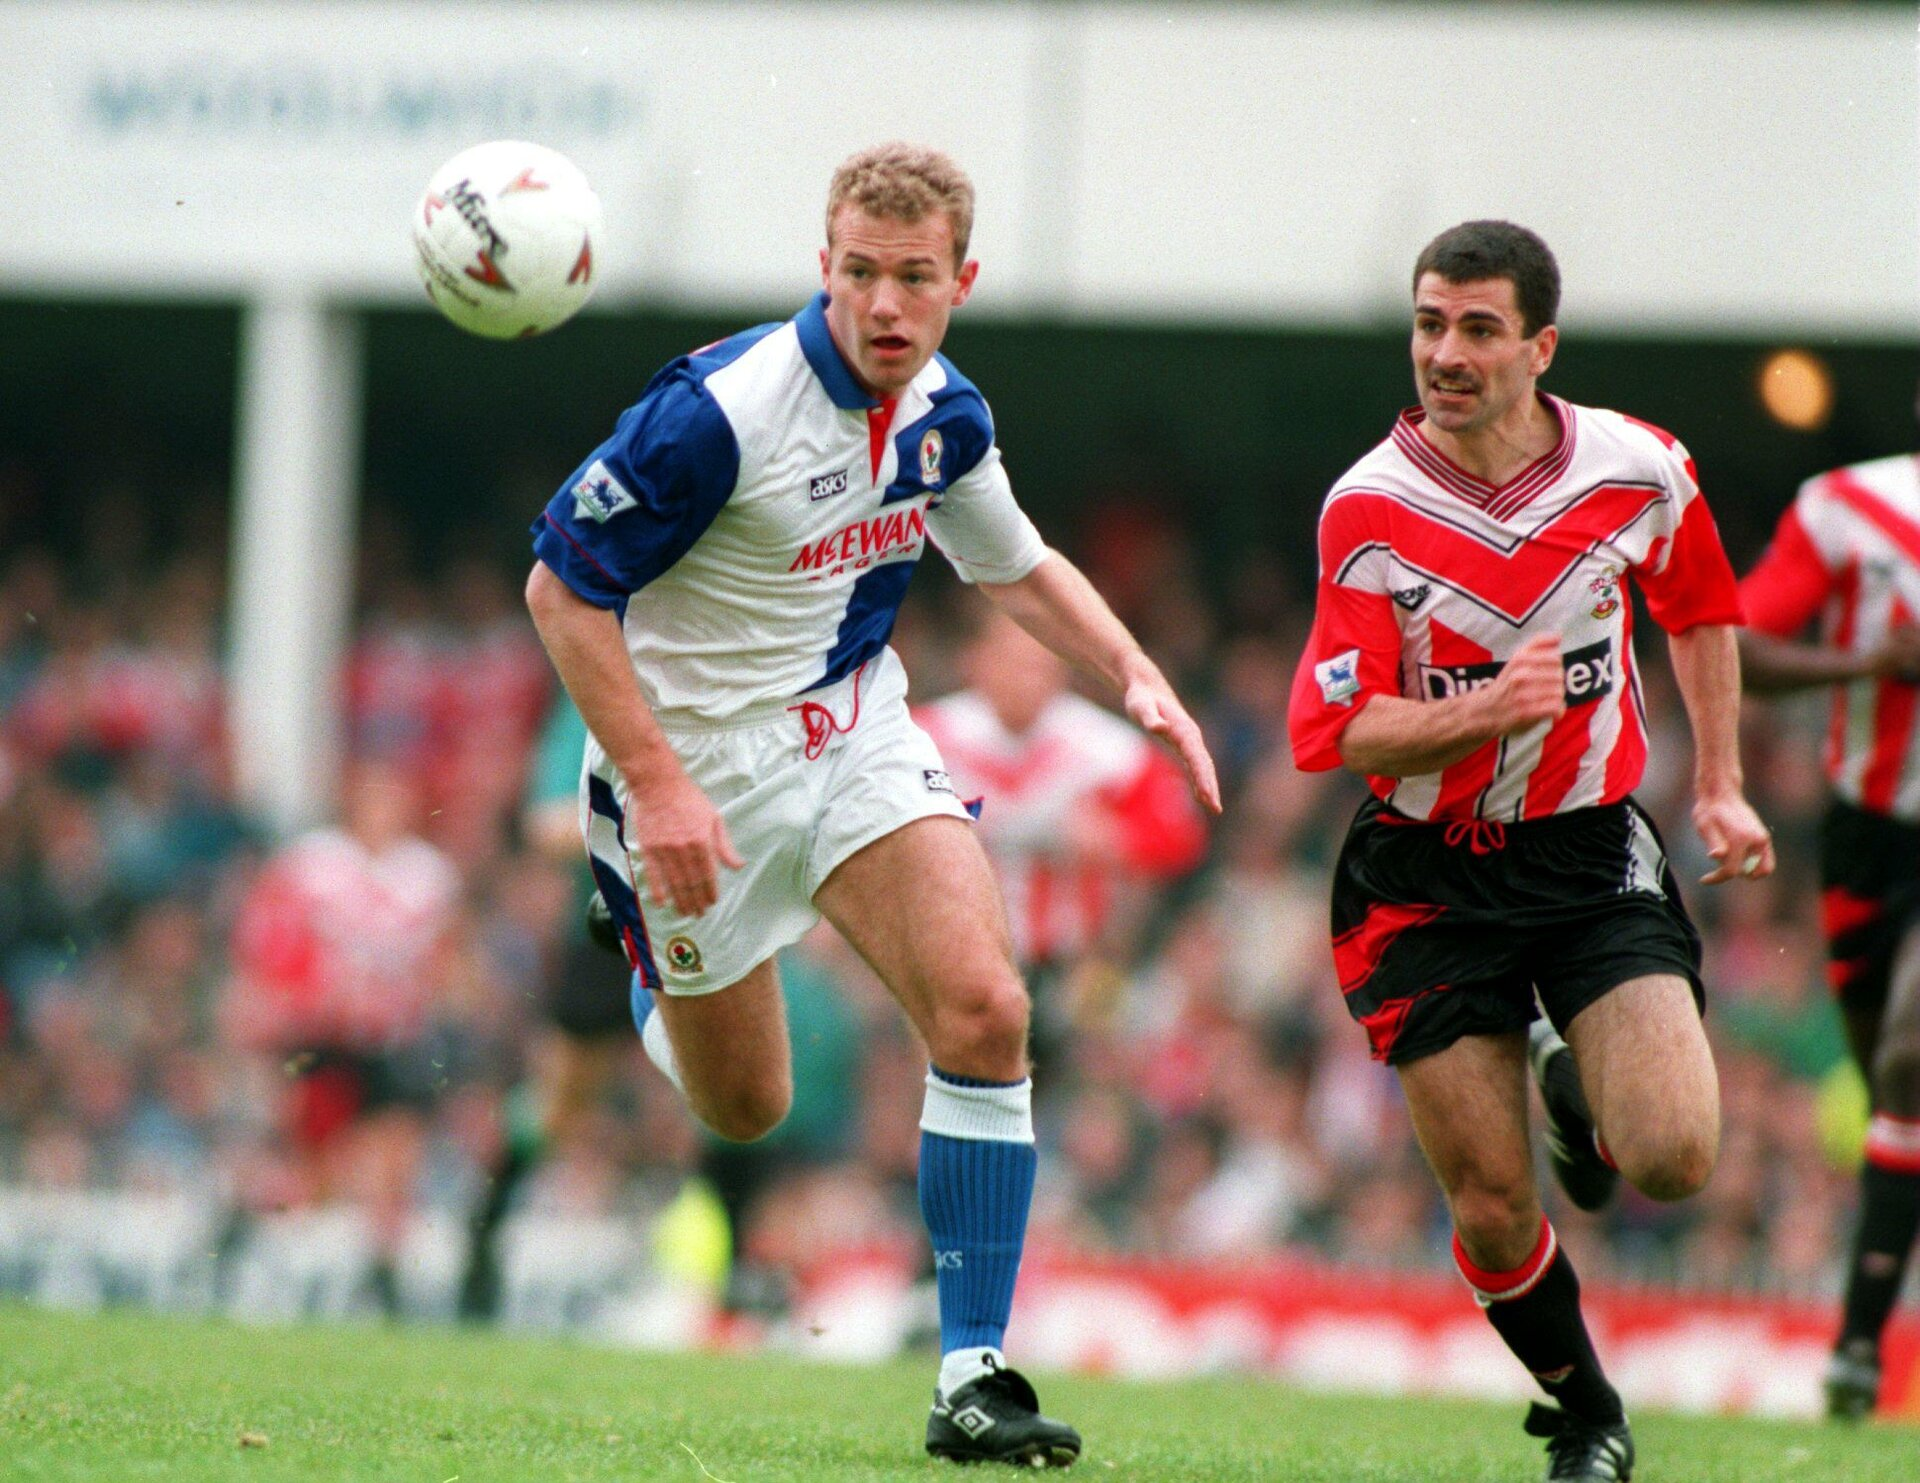 16  APRIL 1994: ALAN SHEARER ATTACKING FOR BLACKBURN AS FRANCIS BENALI LOOKS ON DURING THE SOUTHAMPTON V BLACKBURN ROVERS FA PREMIER LEAGUE MATCH AT THE DELL. SOUTHAMPTON WON THE MATCH 3-1. Mandatory Credit: Chris Cole/ALLSPORT